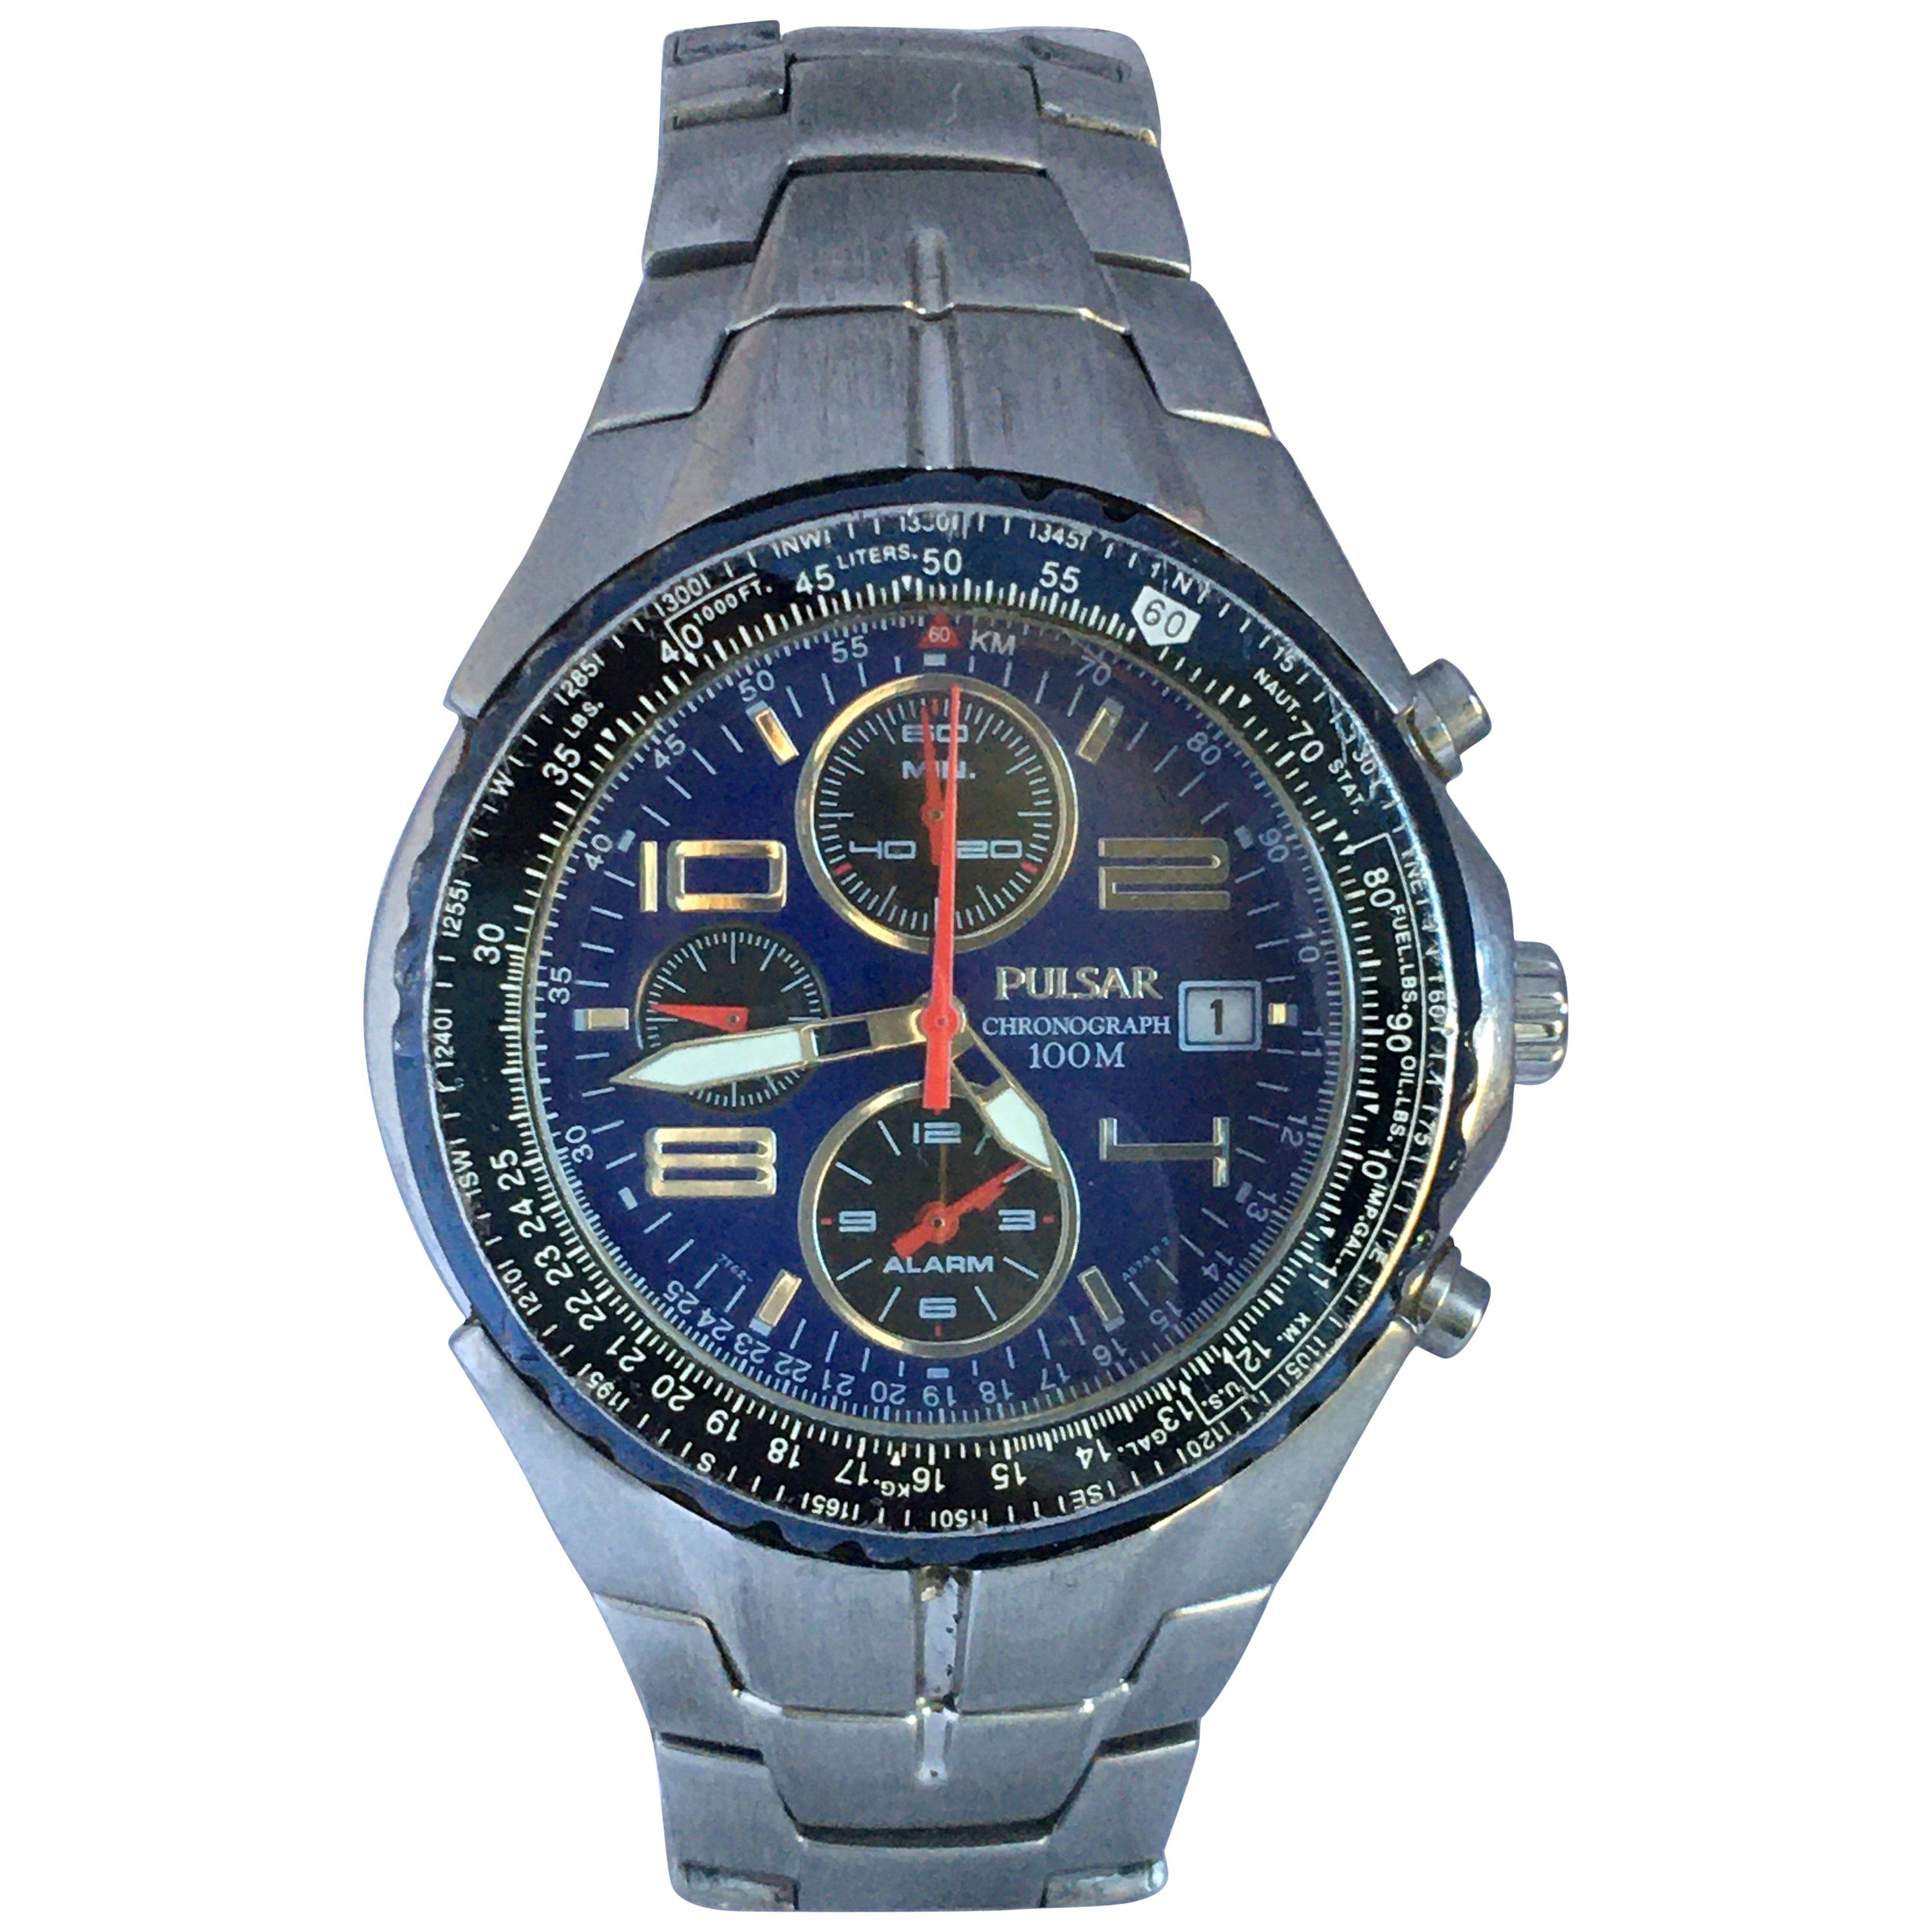 Pre-Owned Stainless Steel Pulsar Chronograph 100M Men's Watch